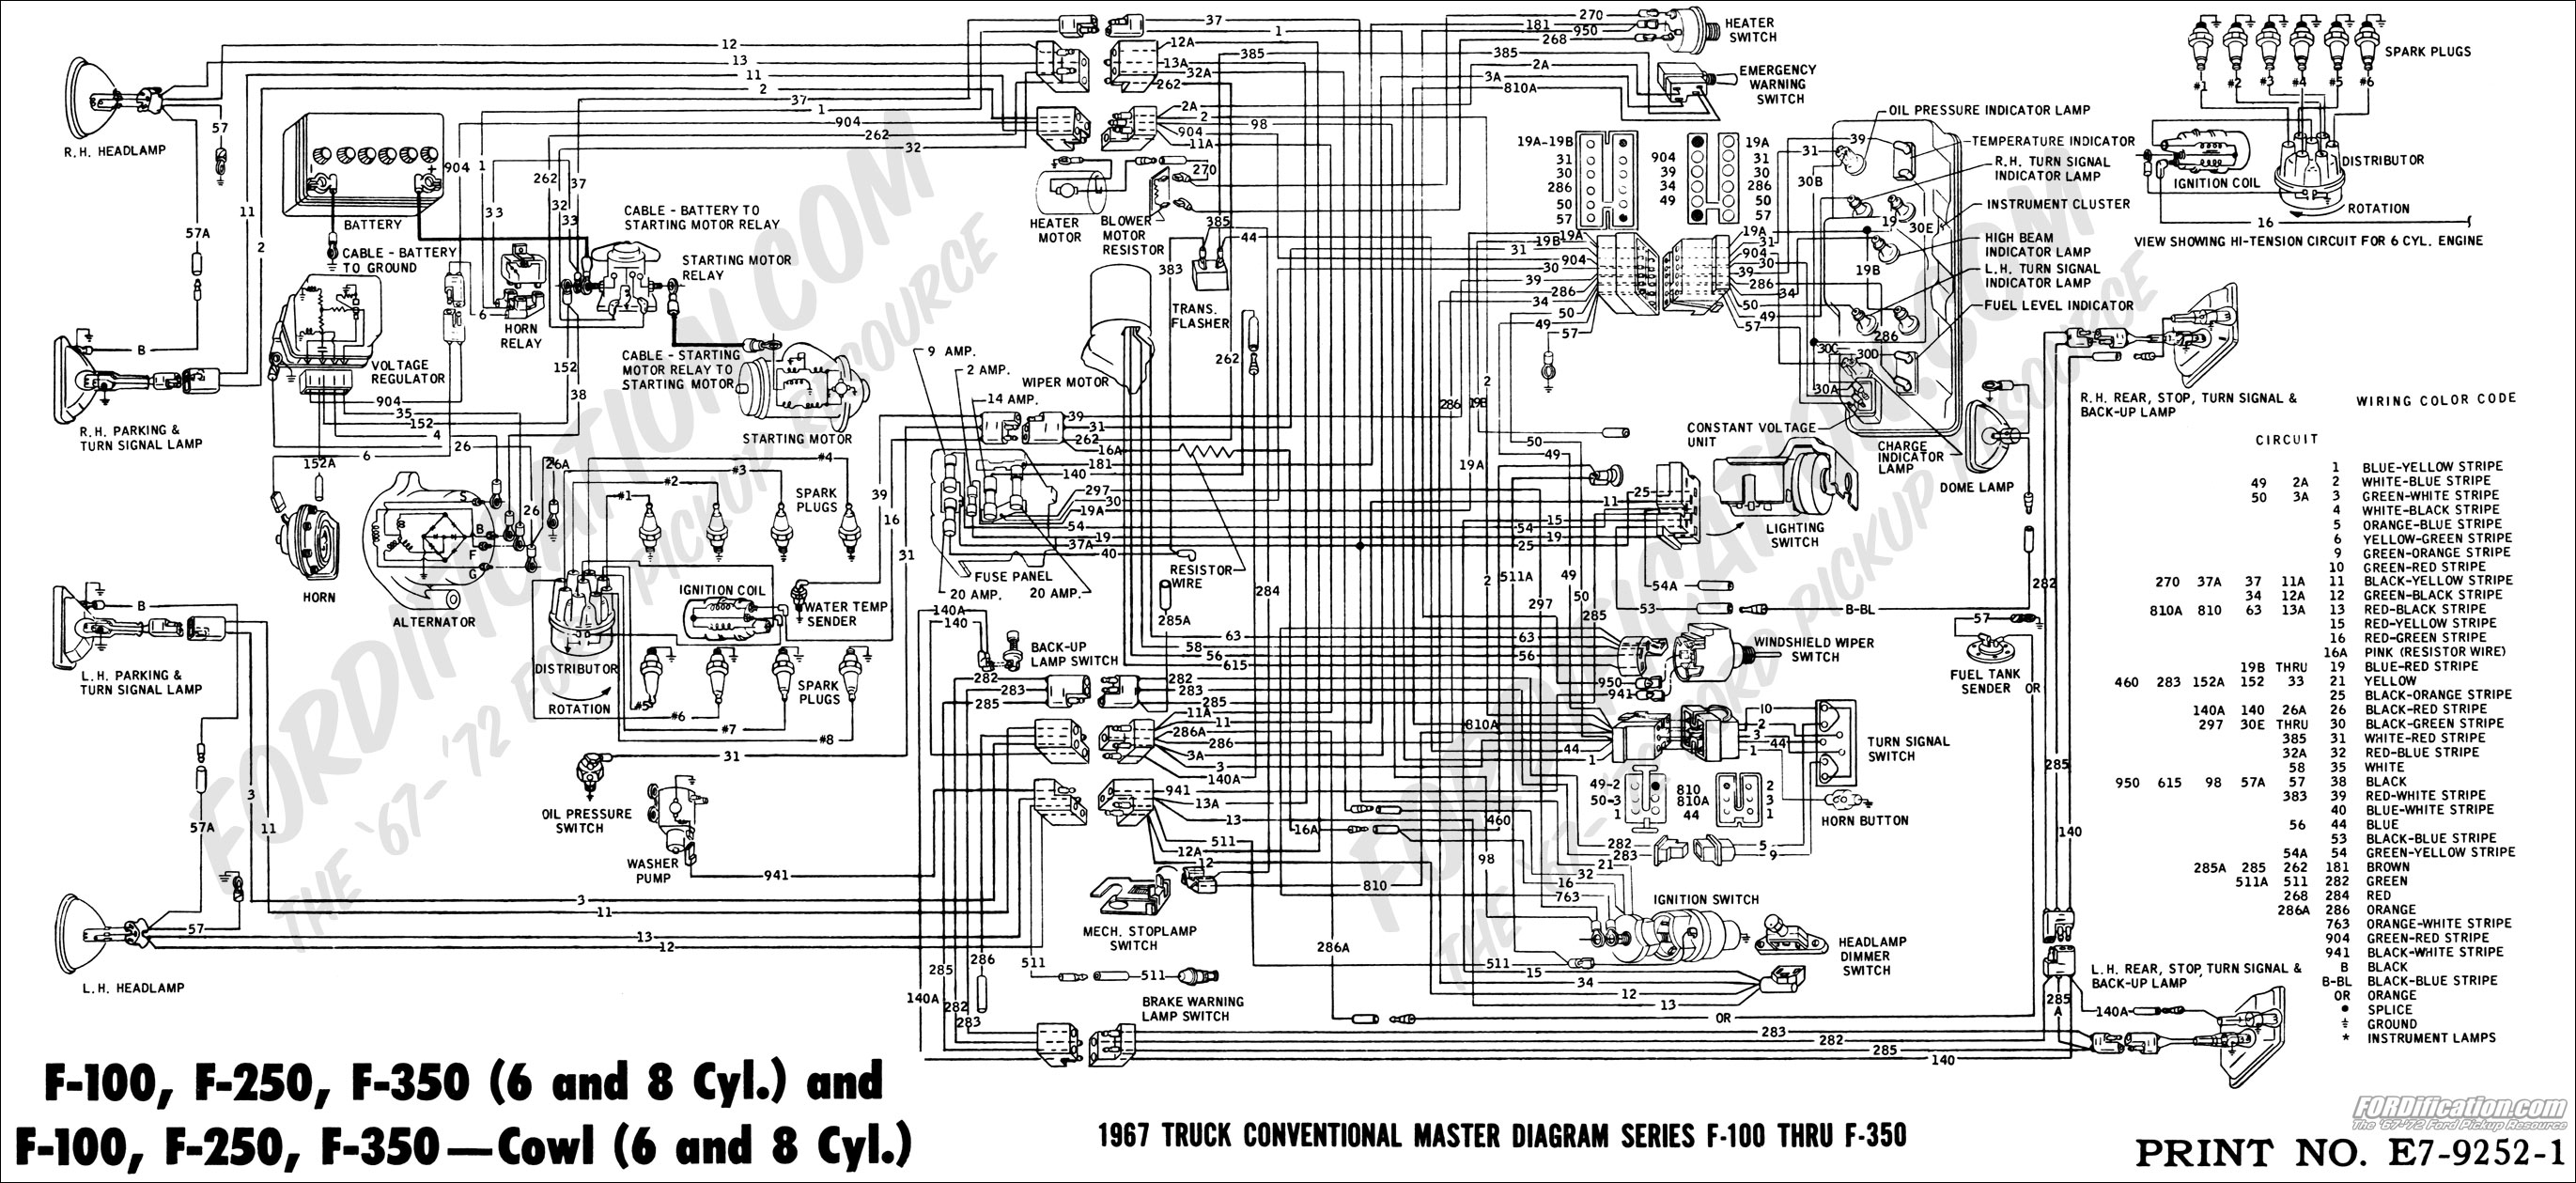 67masterdiagram ford truck technical drawings and schematics section h wiring 2007 f250 wiring diagram at edmiracle.co